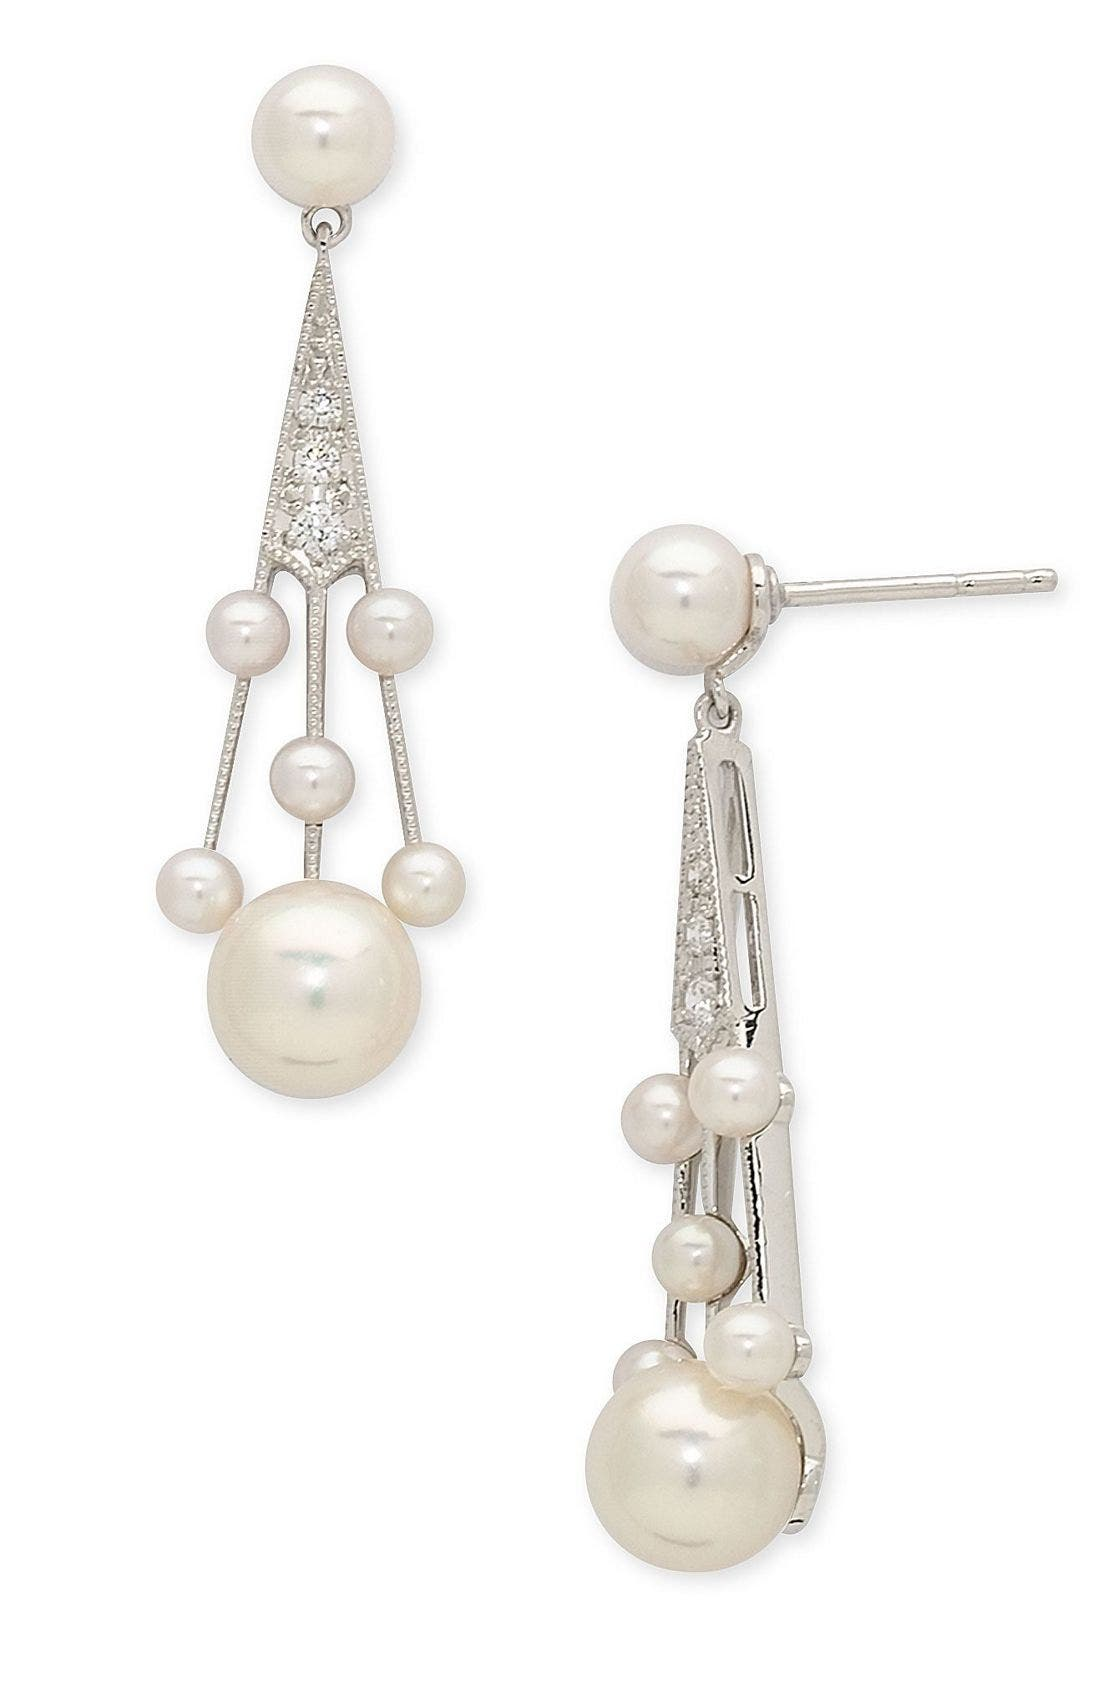 'Legacy Collection' Akoya Cultured Pearl & Diamond Earrings,                             Main thumbnail 1, color,                             PEARL/ DIAMOND